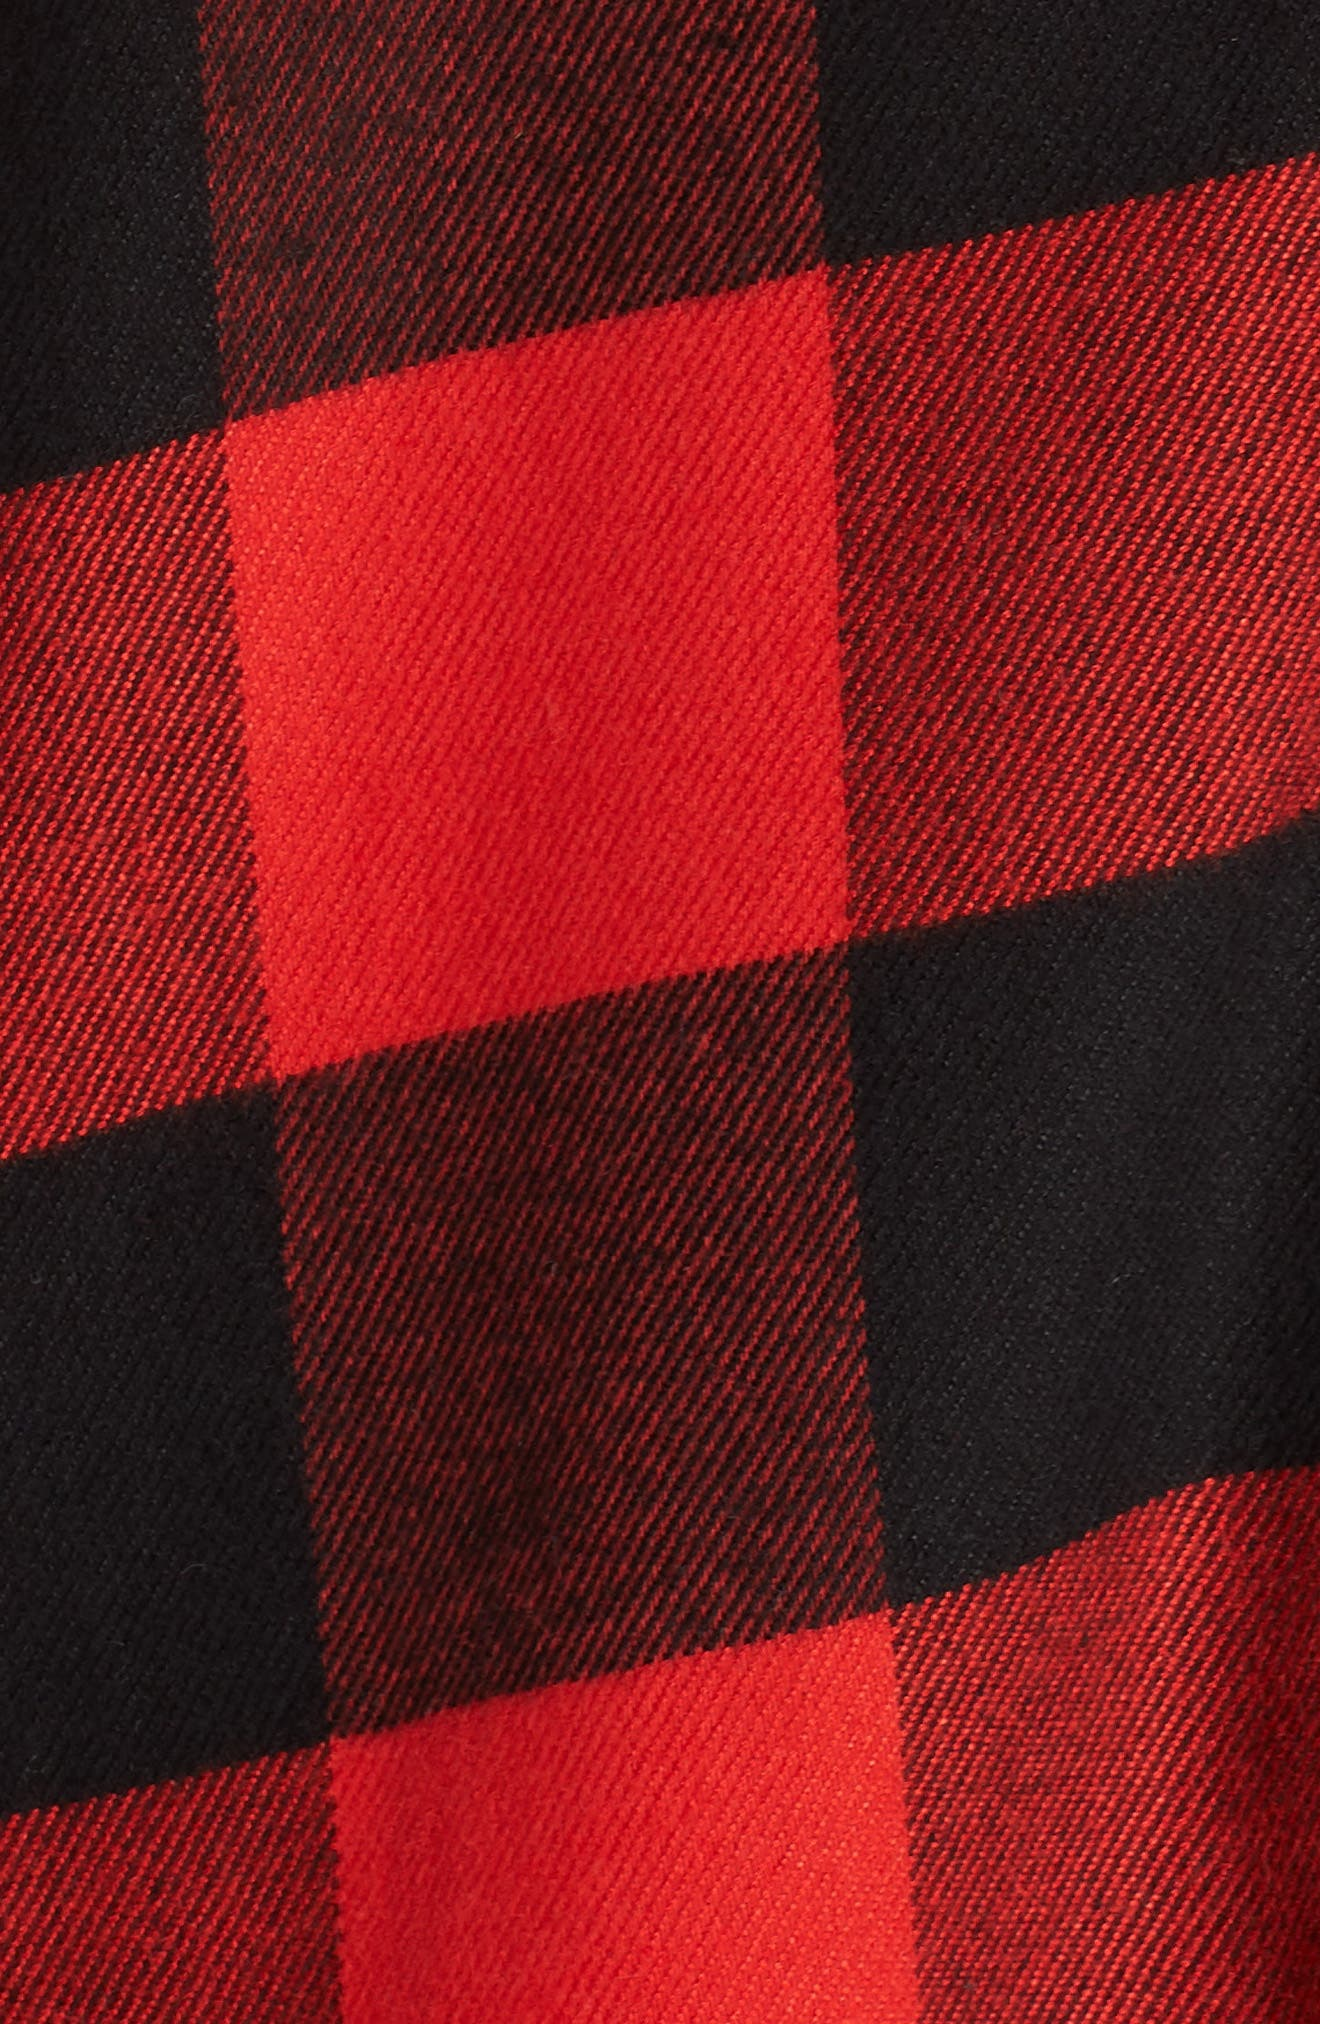 Flannel Nightshirt,                             Alternate thumbnail 5, color,                             RED BLOOM LARGE BUFFALO CHECK